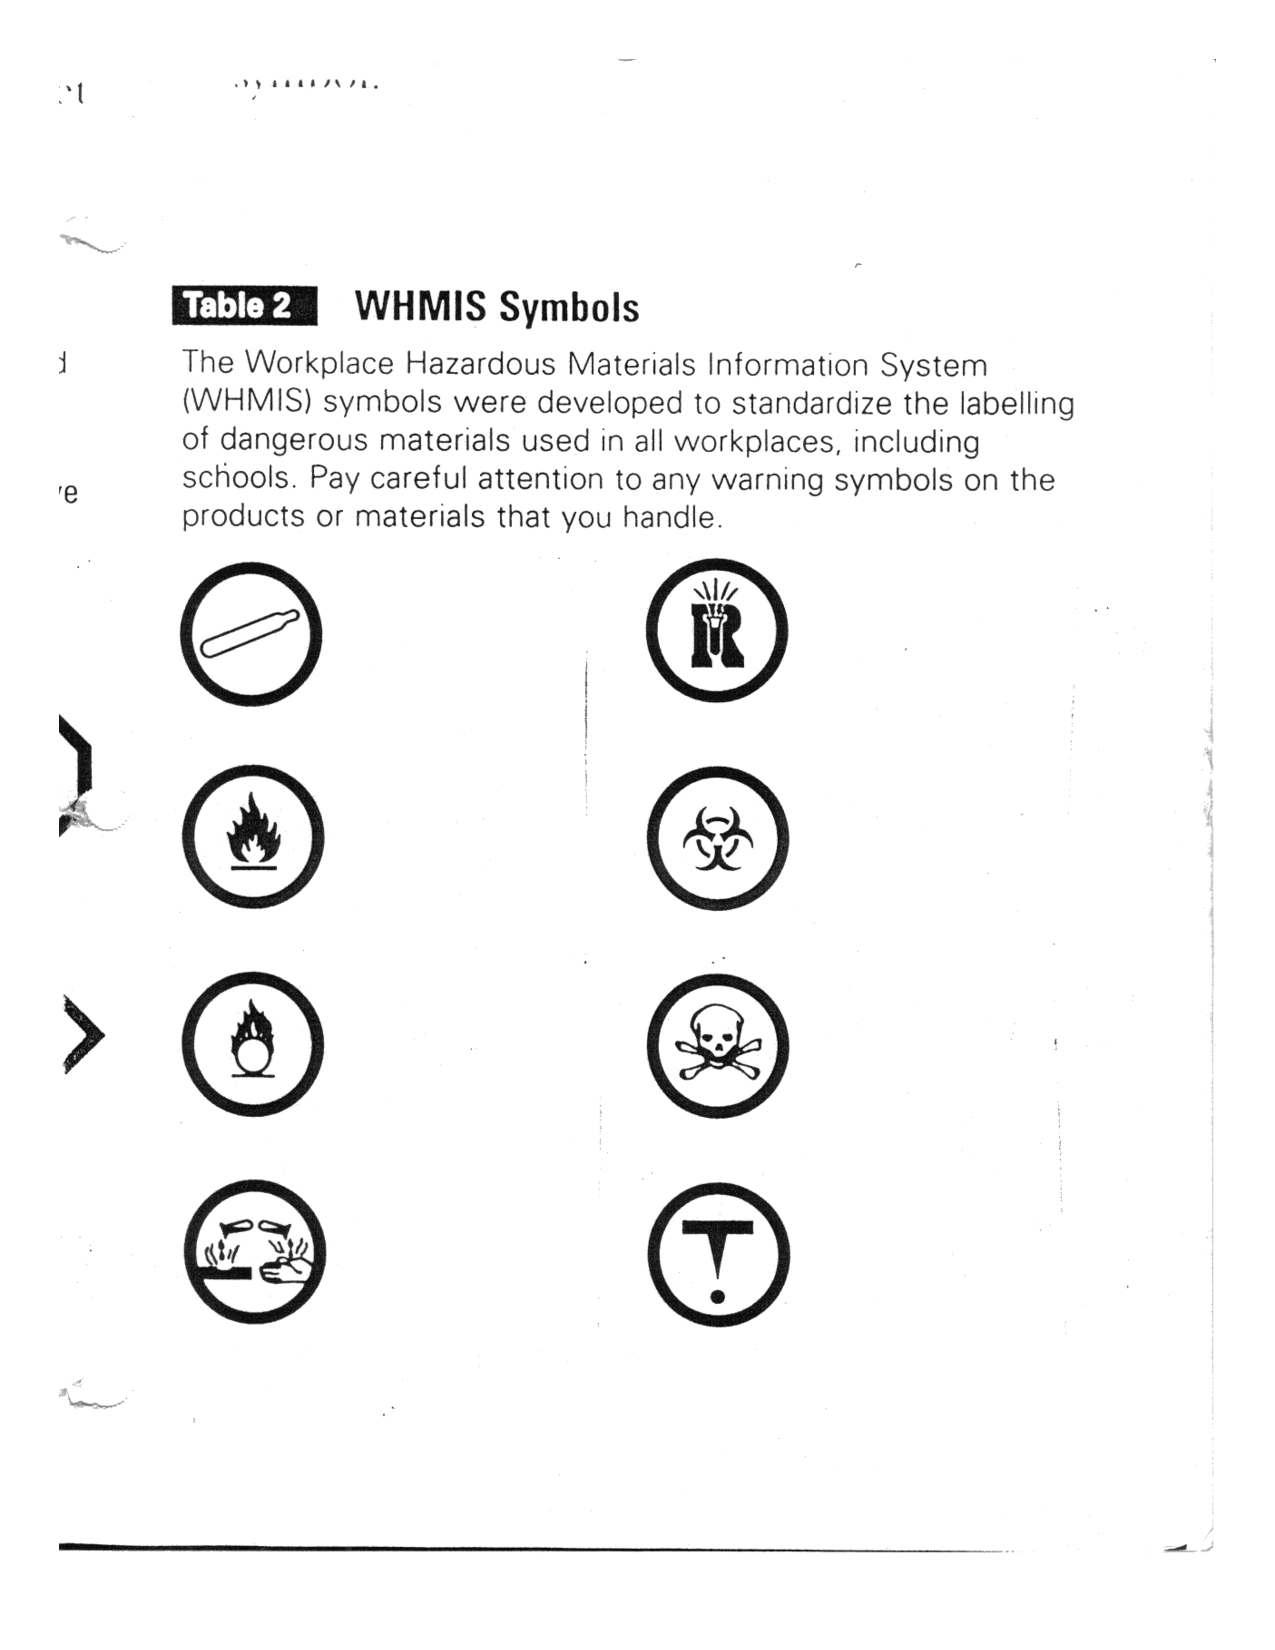 13 Best Images of Safety Symbols Worksheet Answers